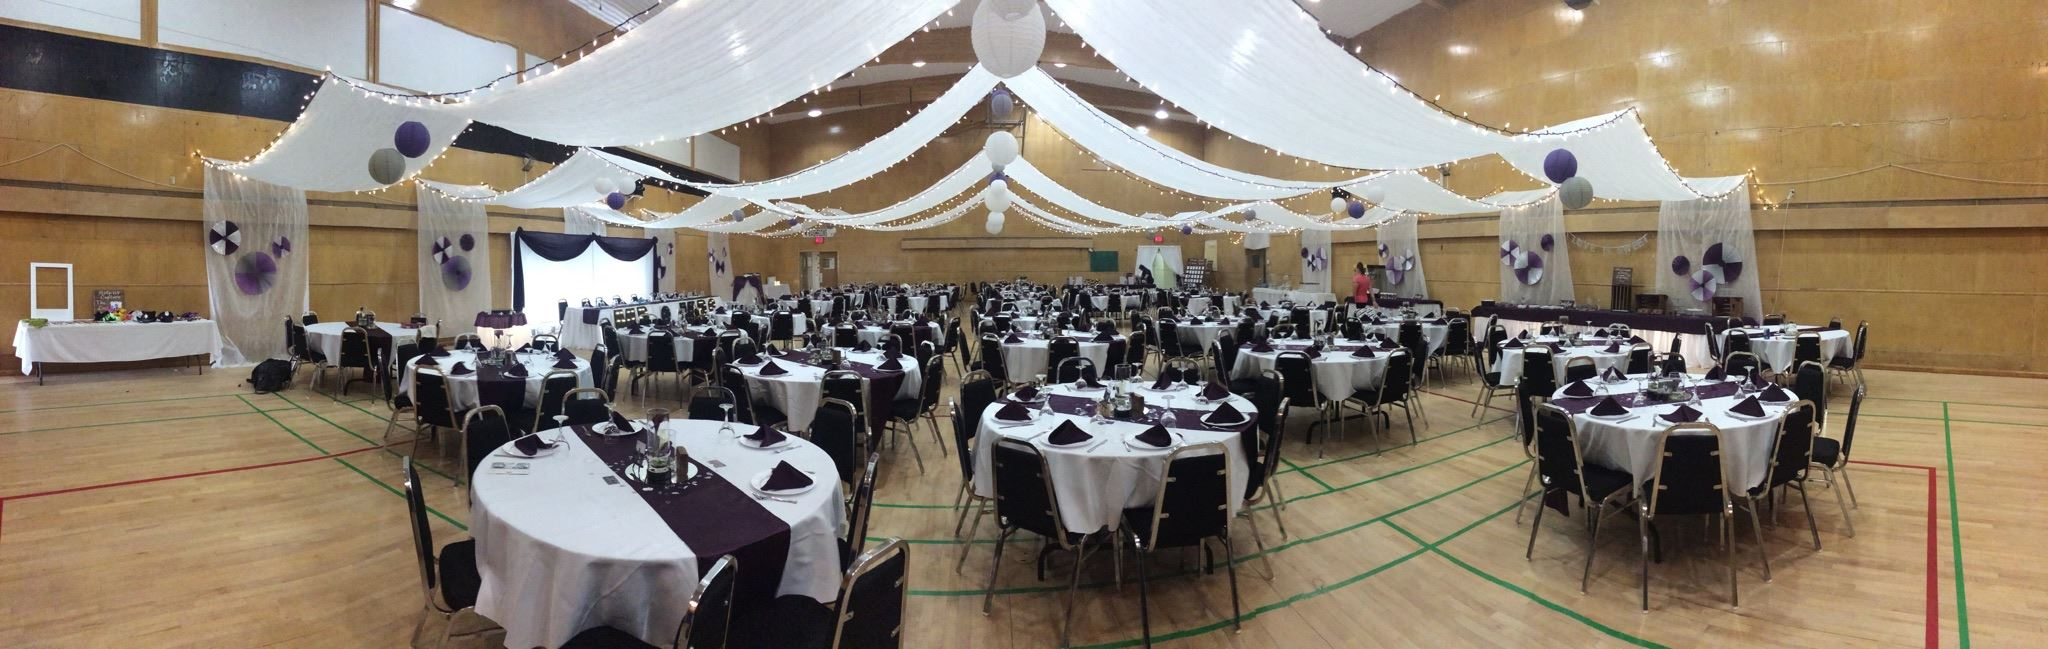 Image of Civic Centre gym set up for a wedding